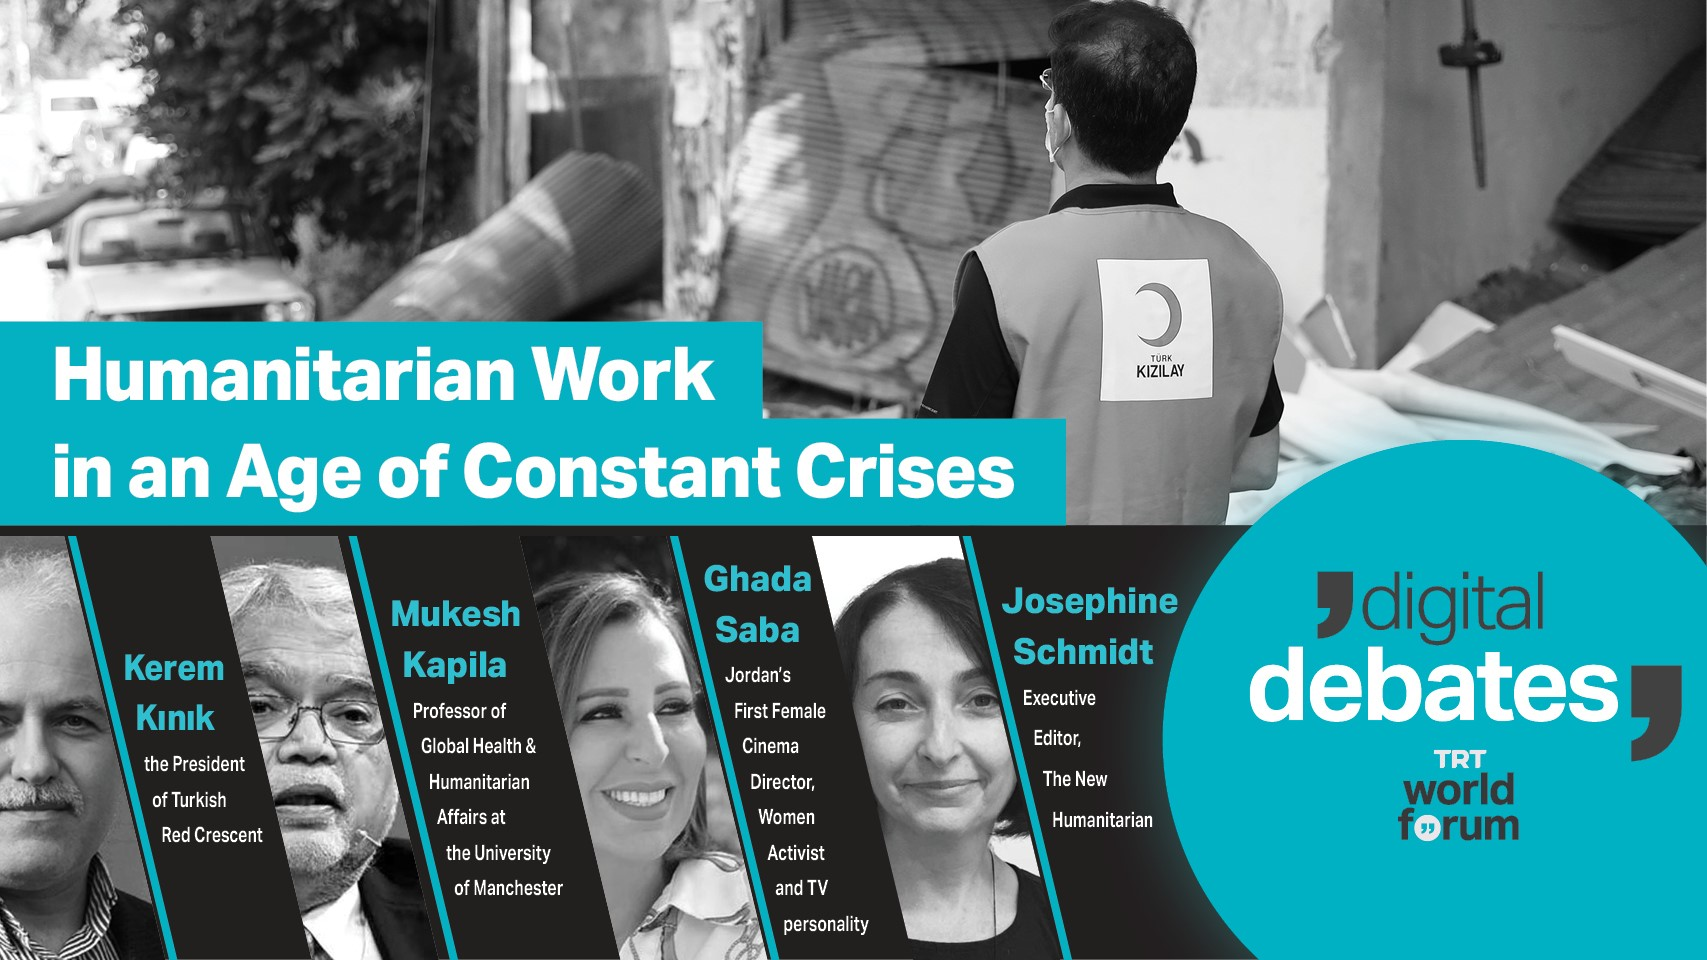 Humanitarian Work in an Age of Constant Crises